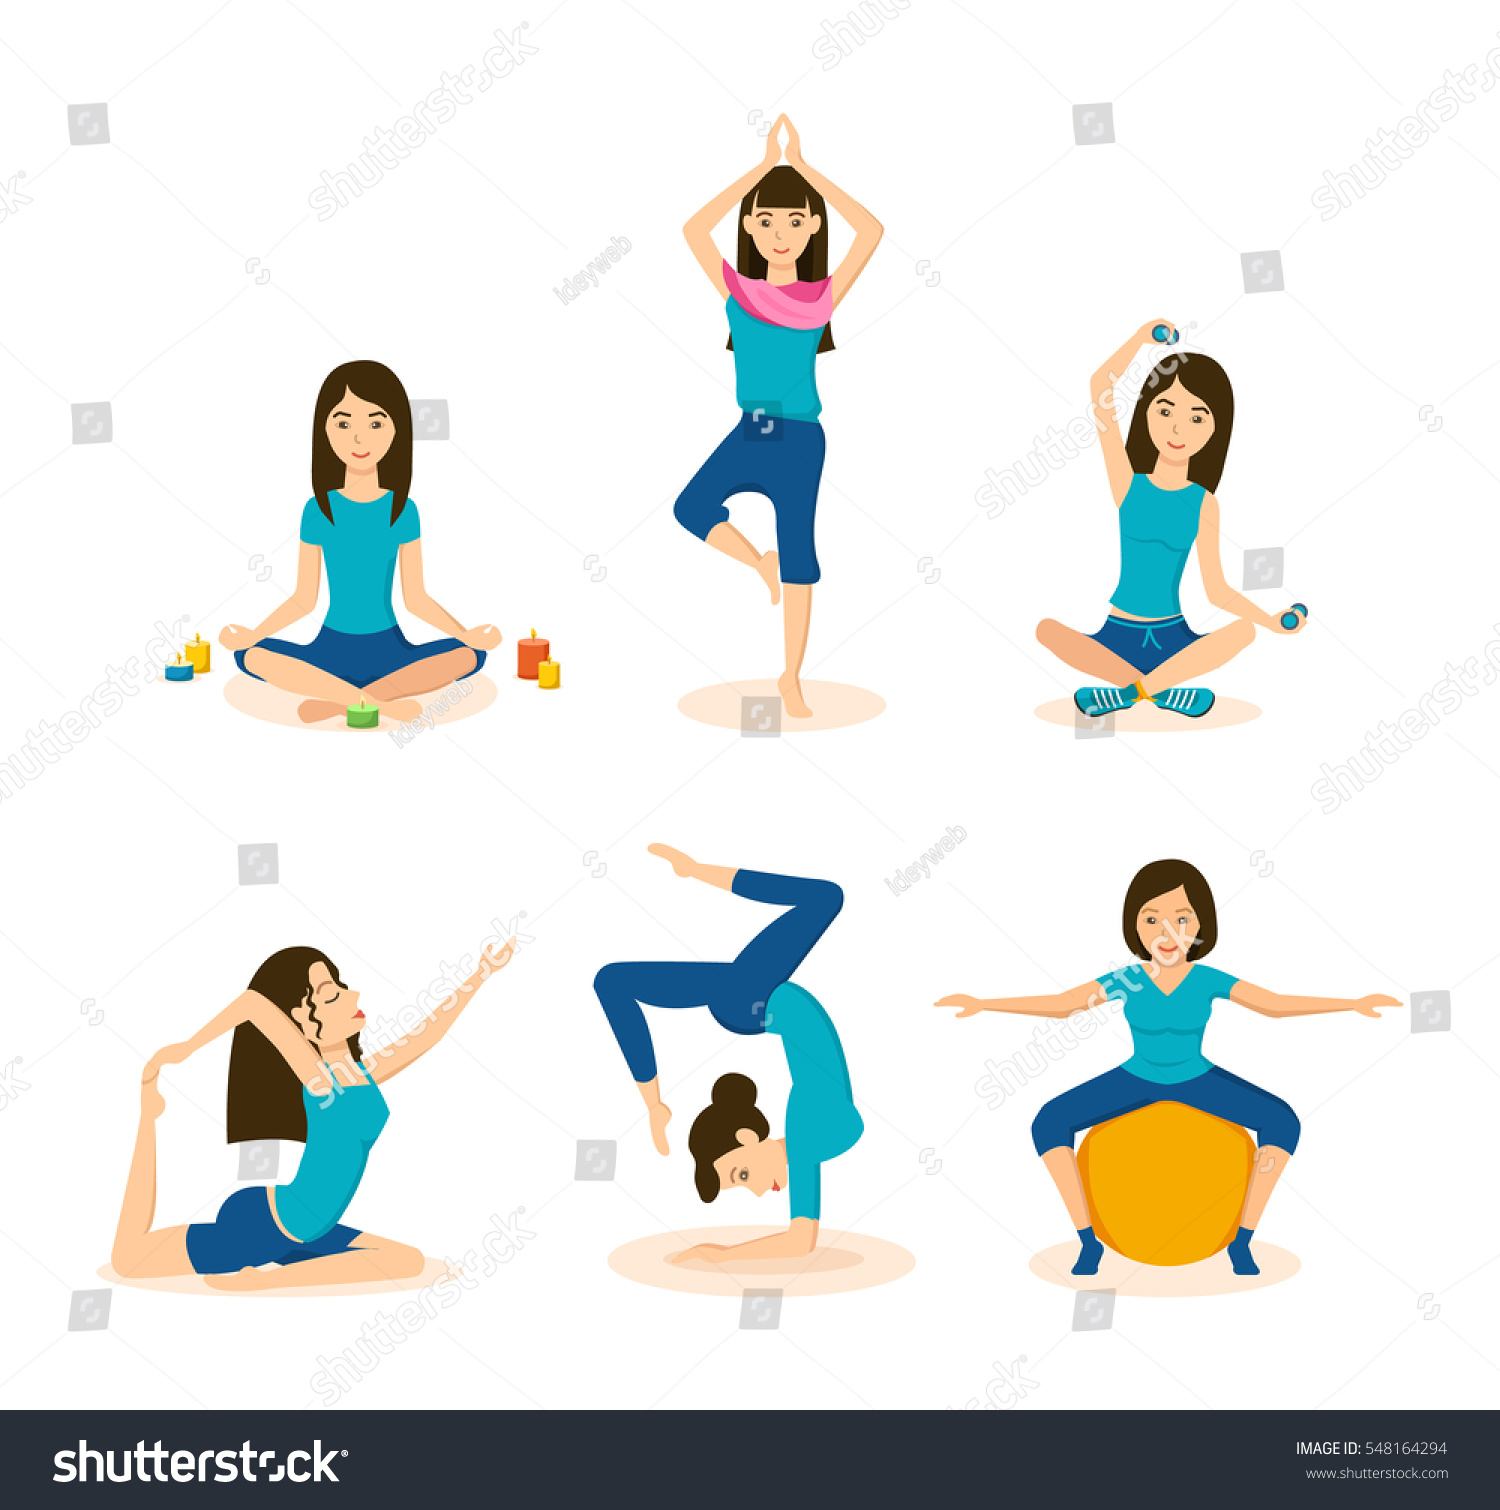 Girls Doing Yoga Meditation Lotus Position Stock Vector Royalty Free 548164294